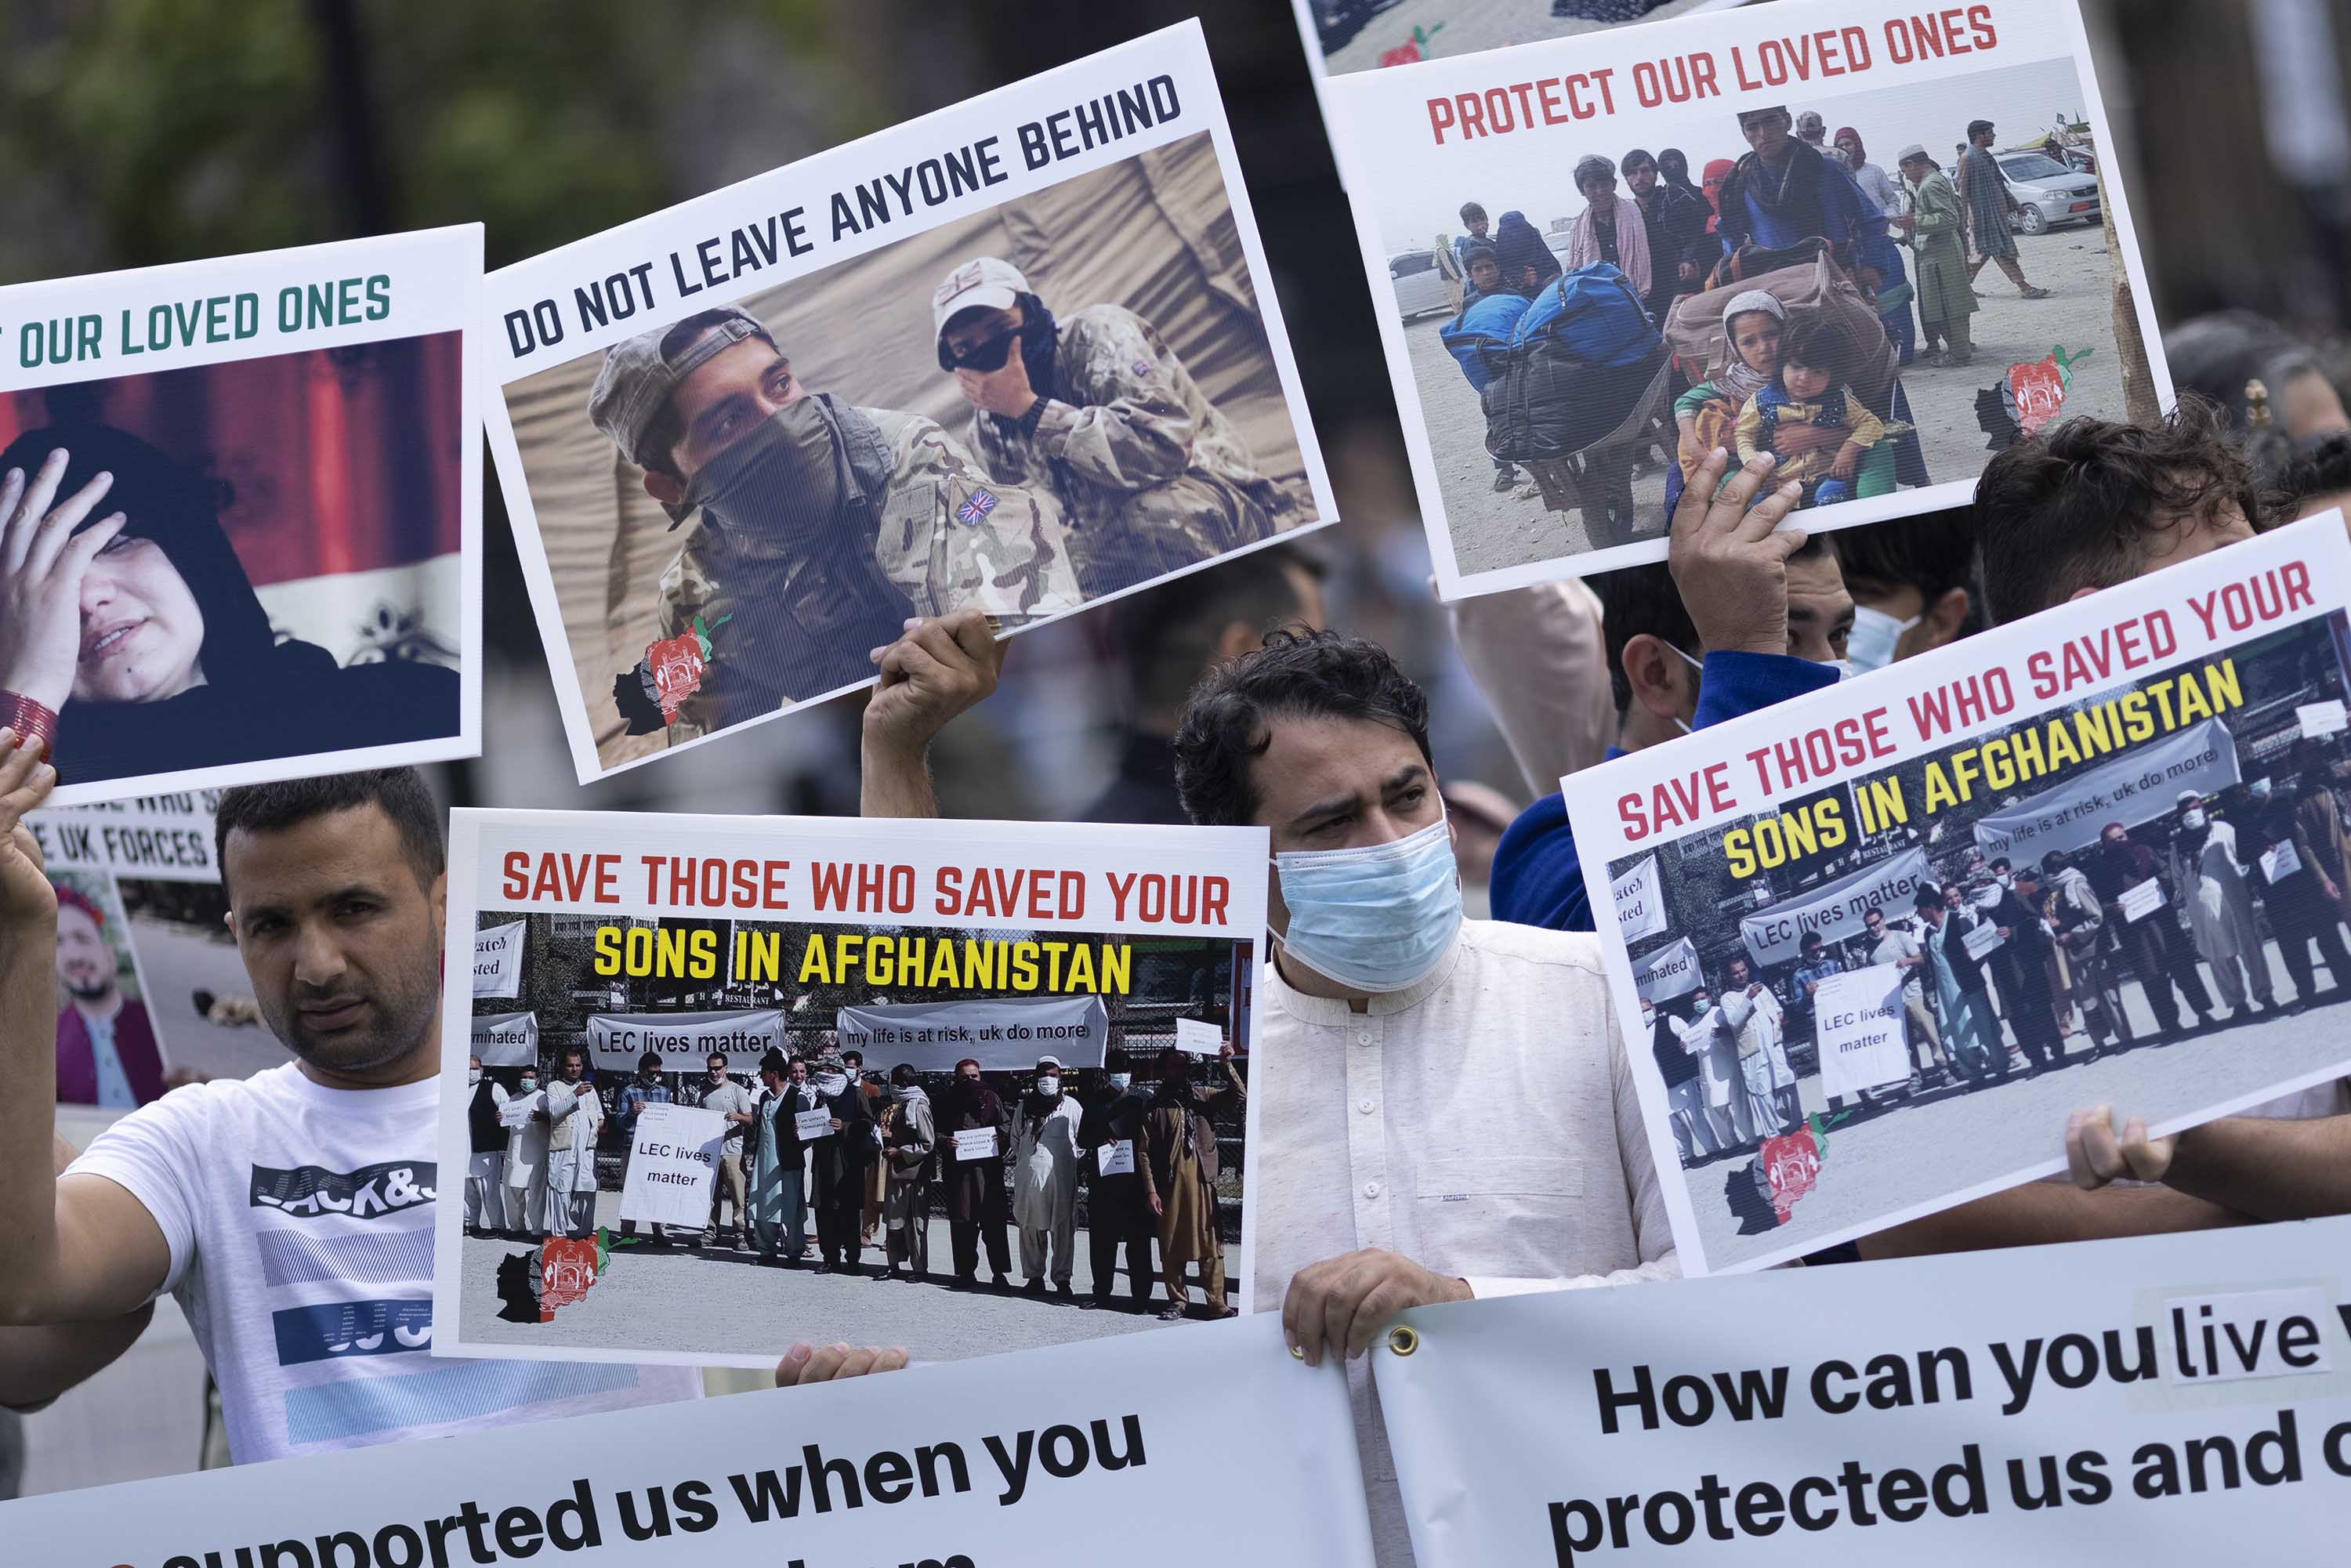 A group of former interpreters for the British and allied forces in Afghanistan protest at Parliament Square in London, on Wednesday, August 18.